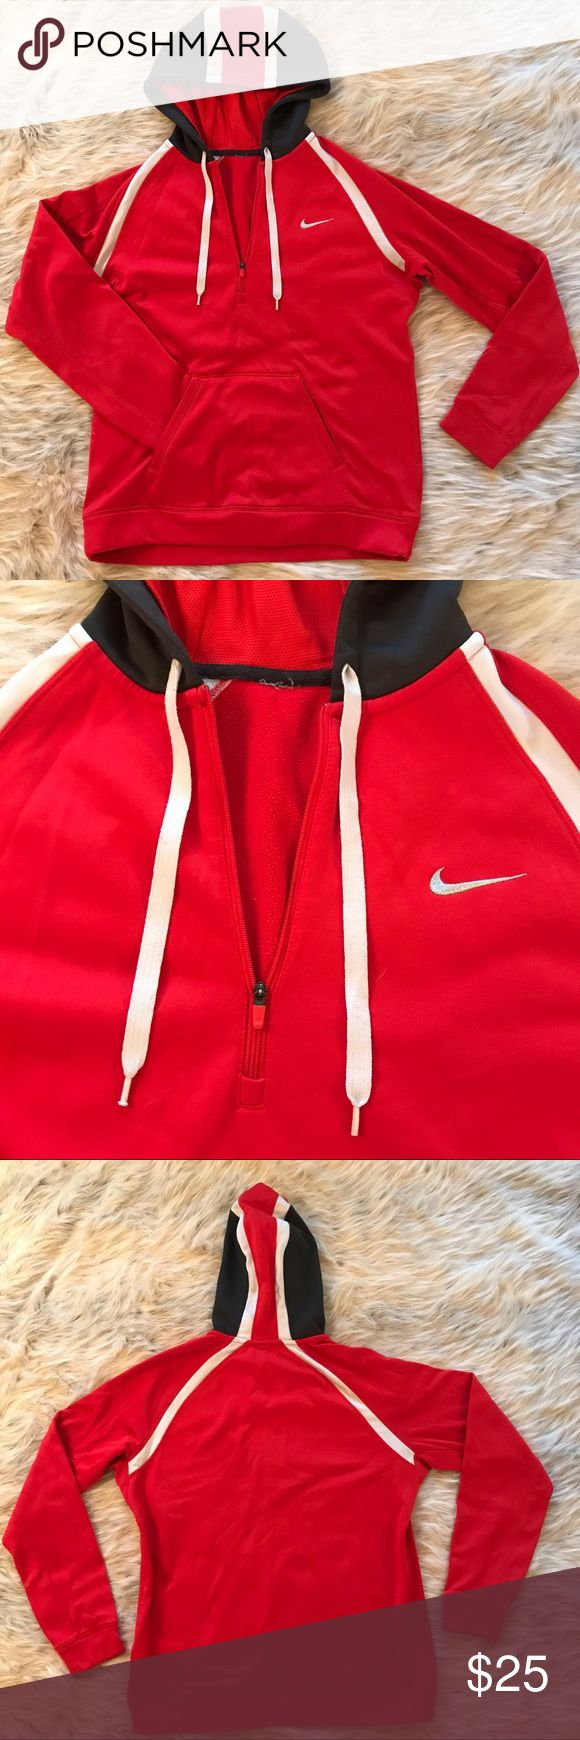 Nike hoodie red small women's Red women's Nike hoodie, tags are cut out but I believe it's a size small, the fabric is kind of slick on the outside like a lot of athletic hoodies are. Great condition Nike Jackets & Coats